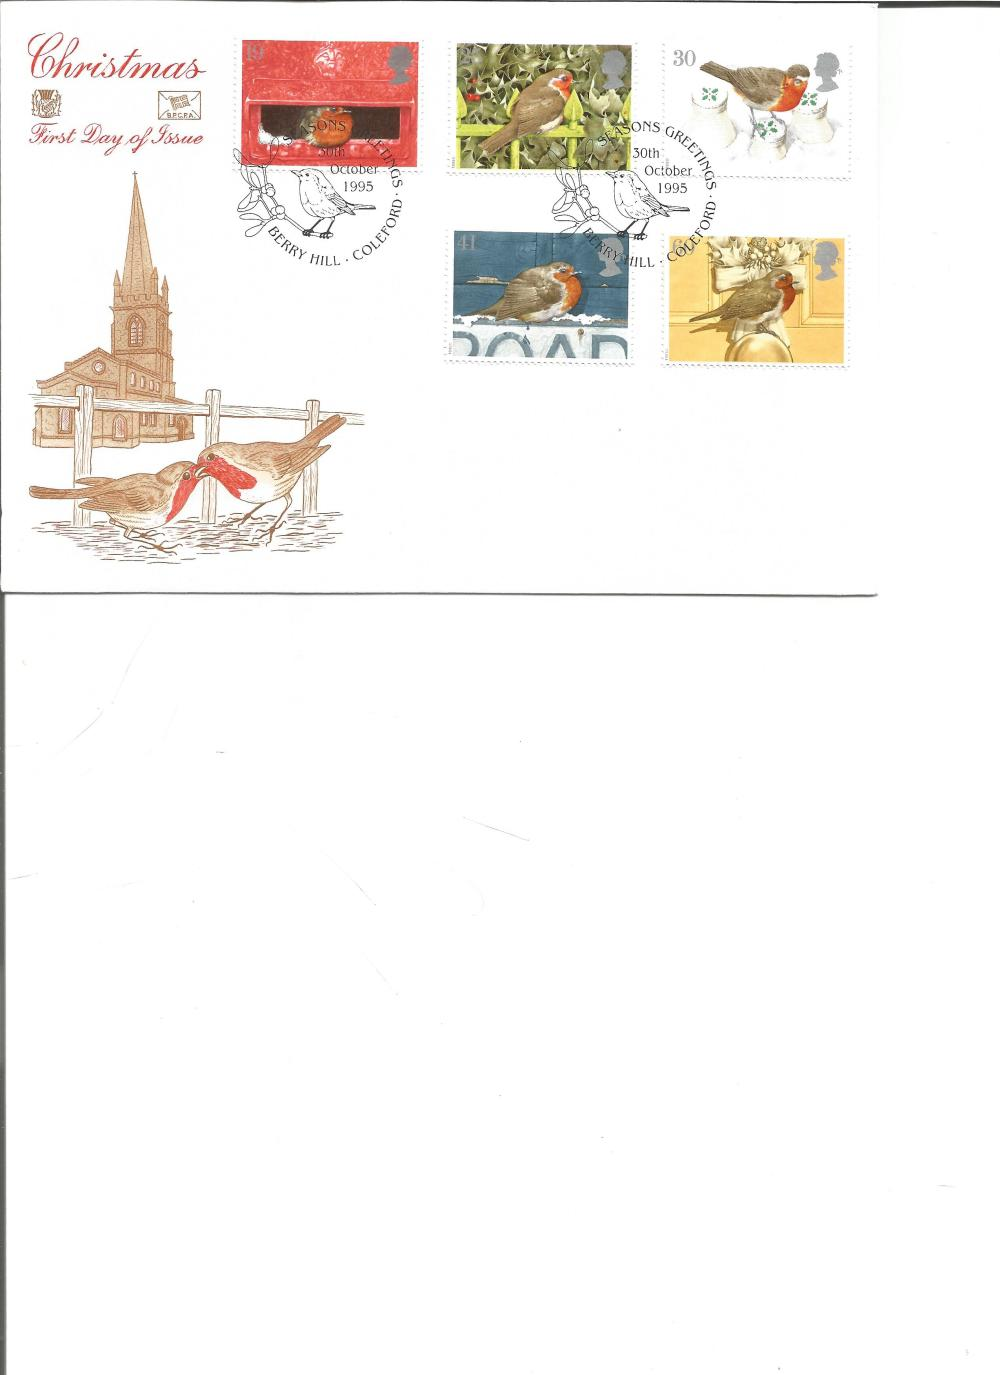 FDC Christmas c/w set of five commemorative stamps PM Seasons Greetings, Berry Hill Coleford 30th